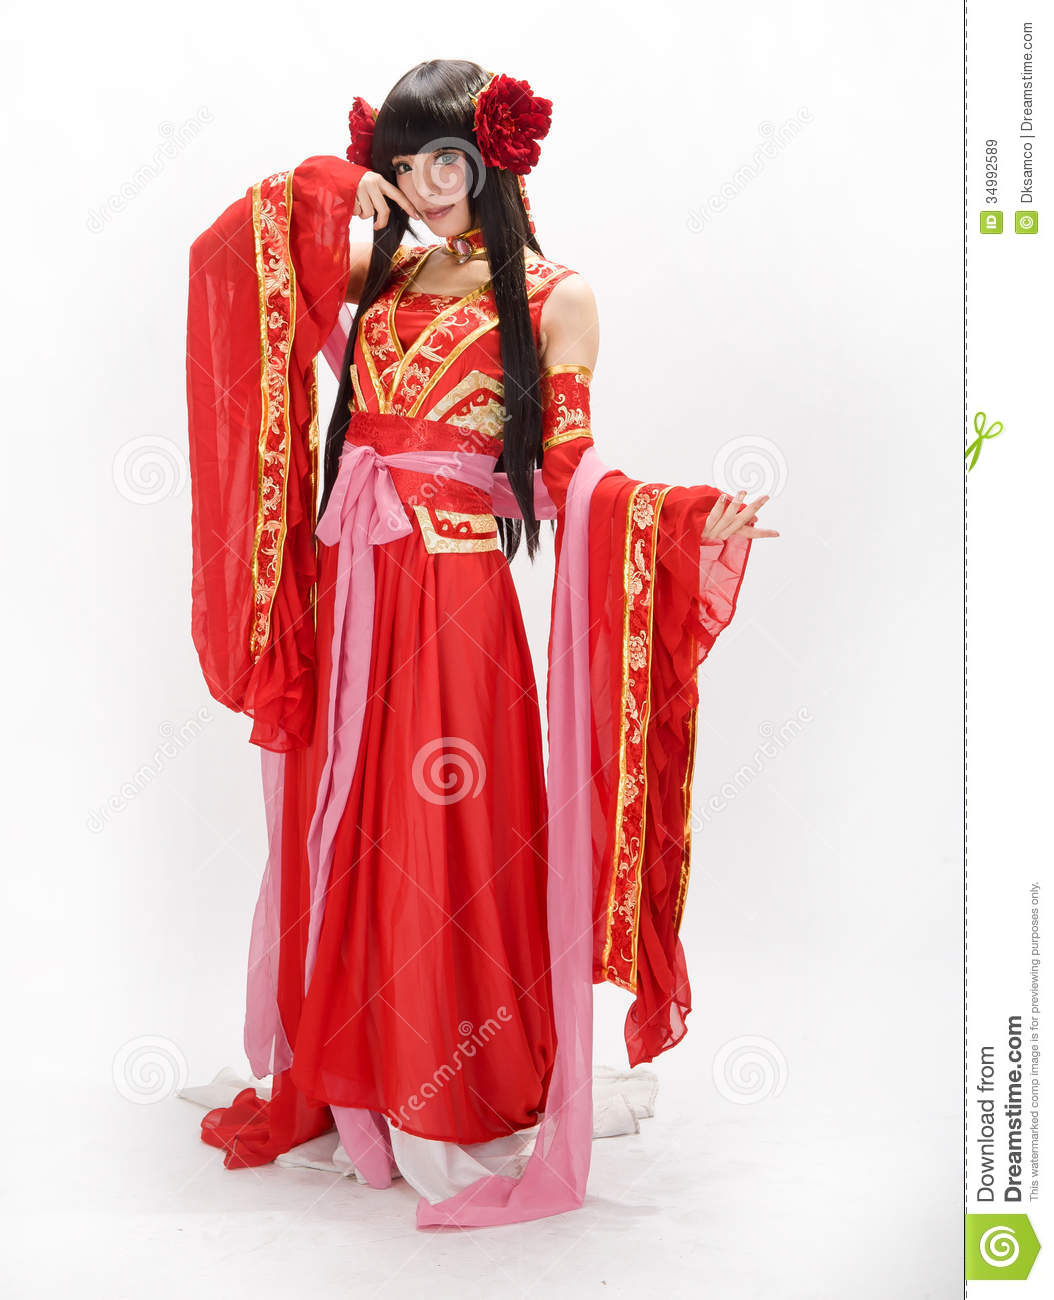 Asia Chinese Style Girl In Red Traditional Dress Dancer -1500